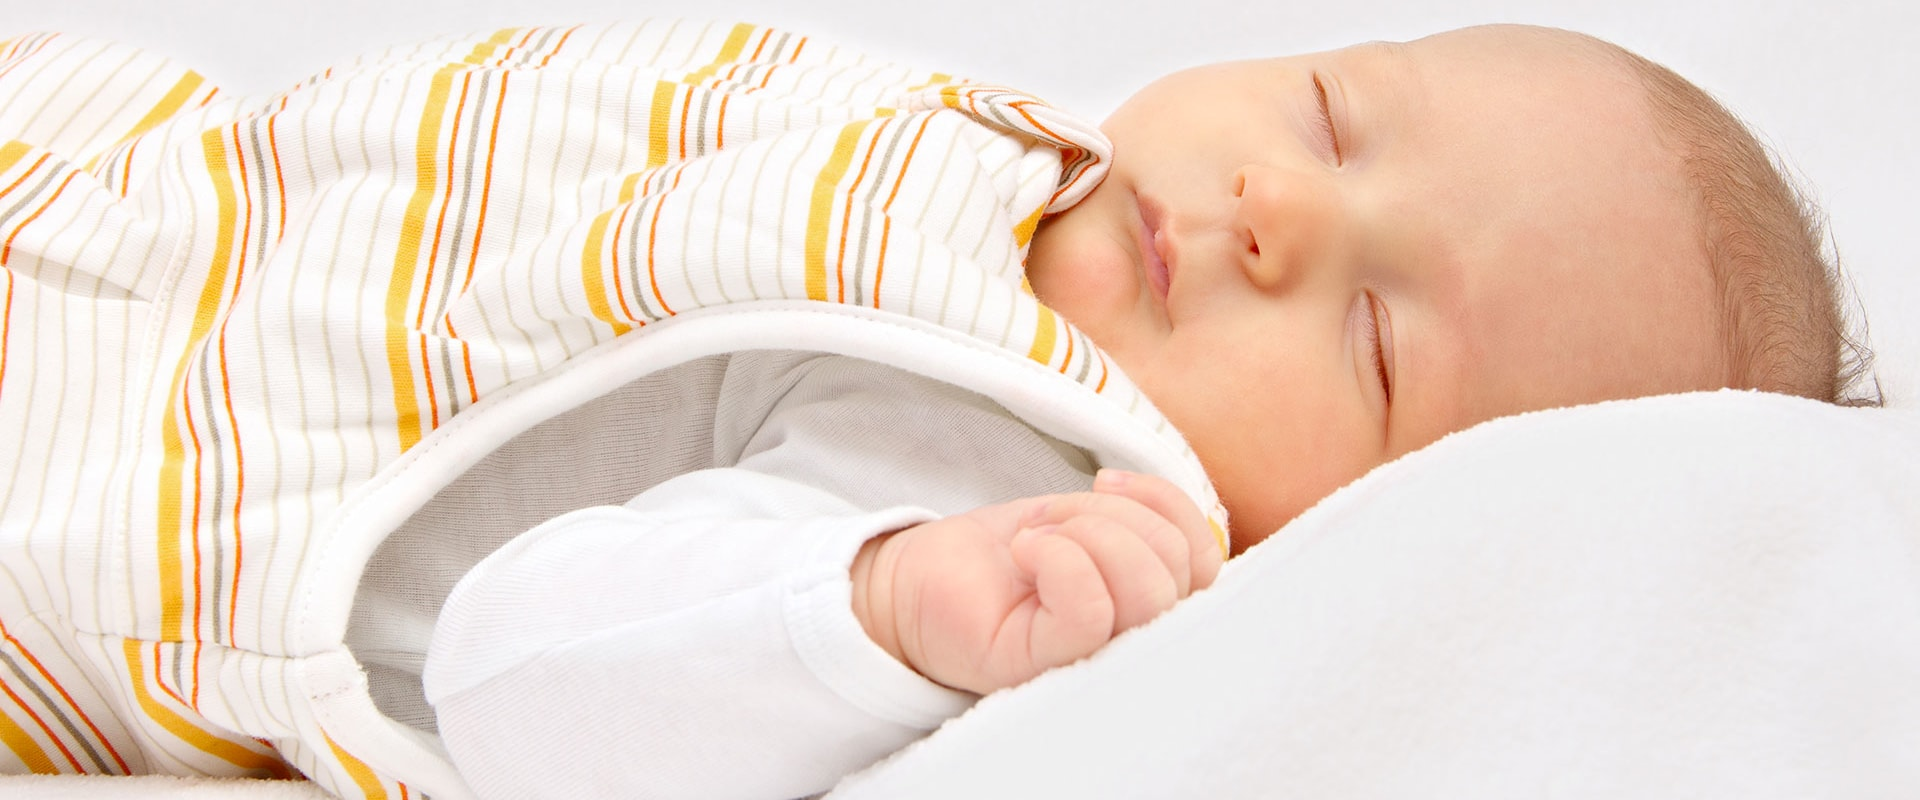 are sleeping bags safe for babies?